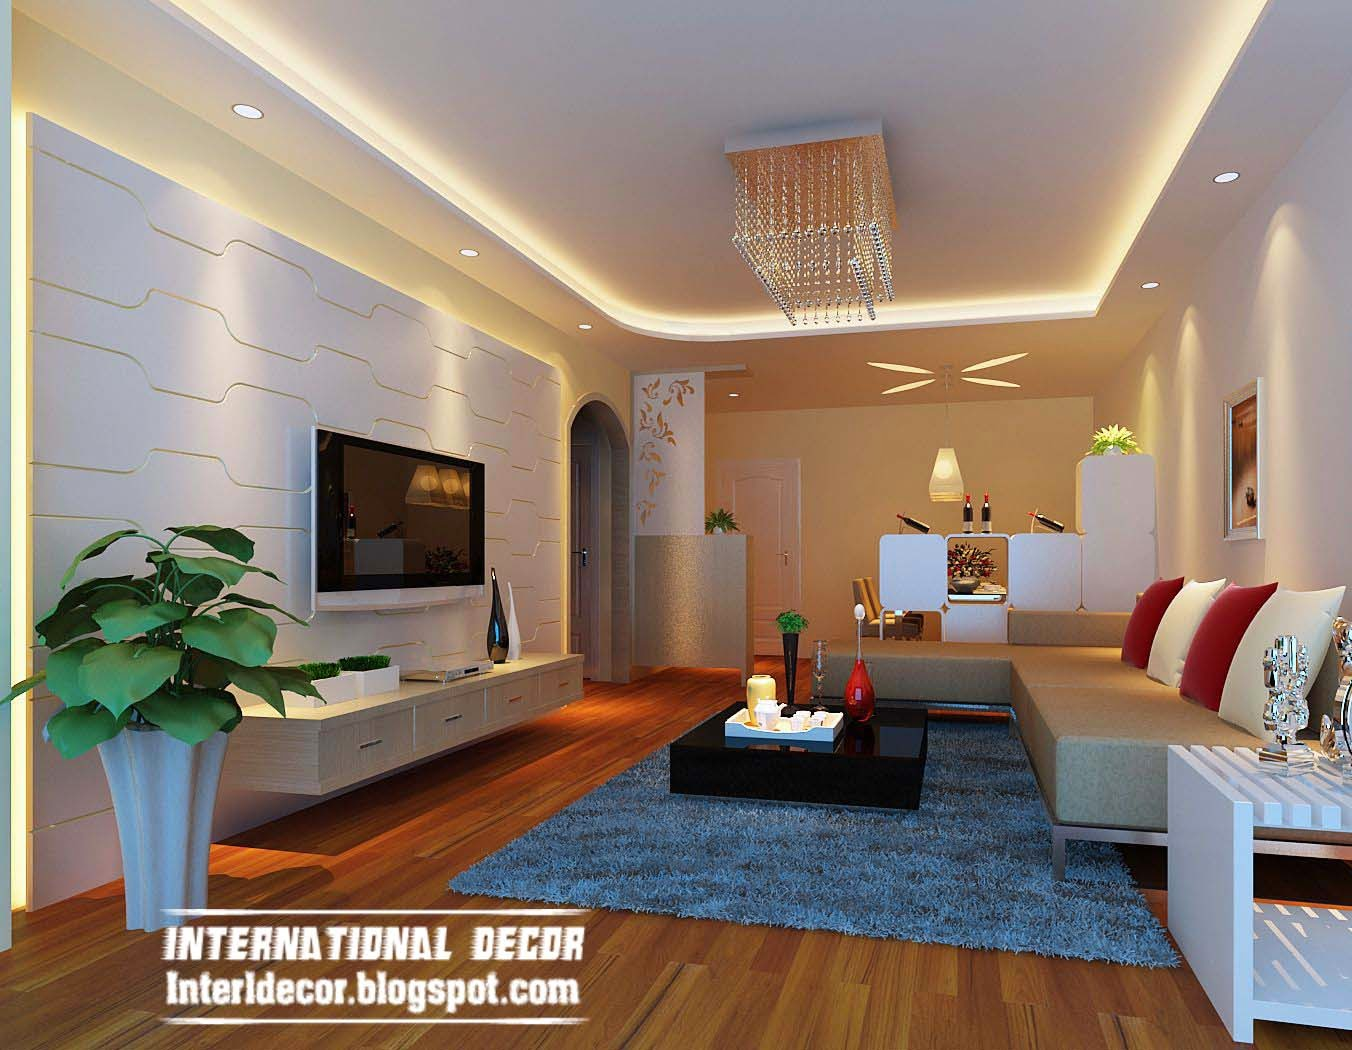 interior design 2014 top 10 suspended ceiling tiles lighting pop designs for living room 2014